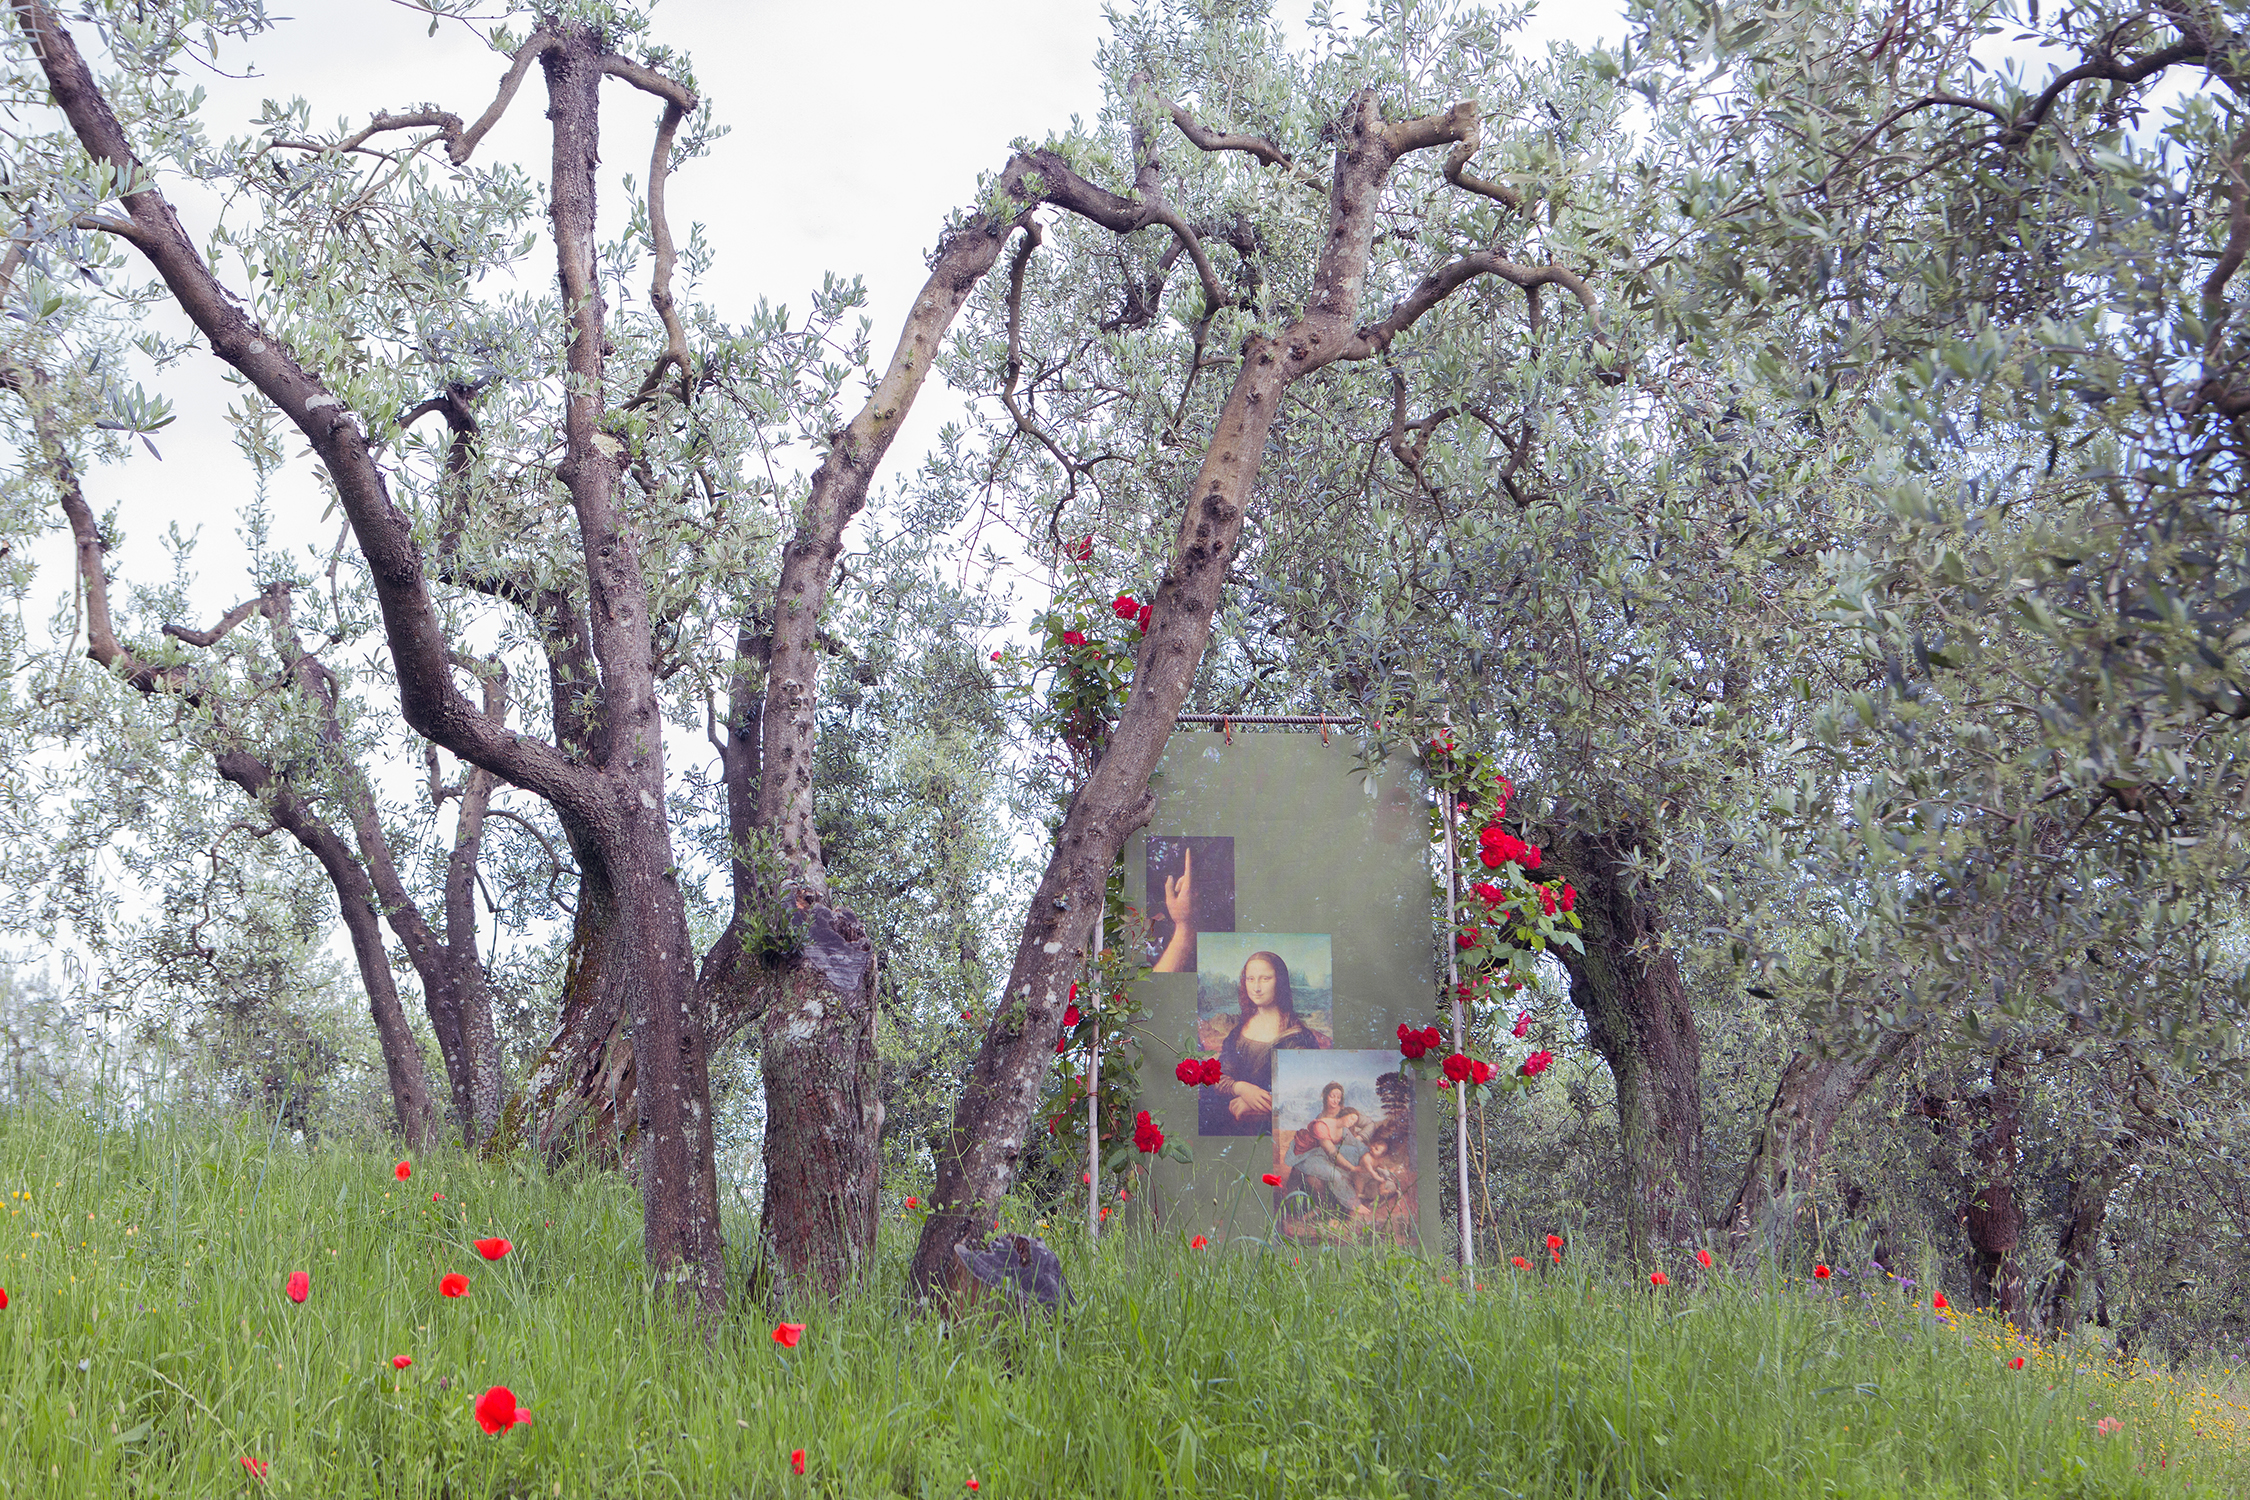 Reproductions of Leonardo's works decorate the path that, among olive groves and vineyards, leads from Vinci to the artist's home in Anchiano.